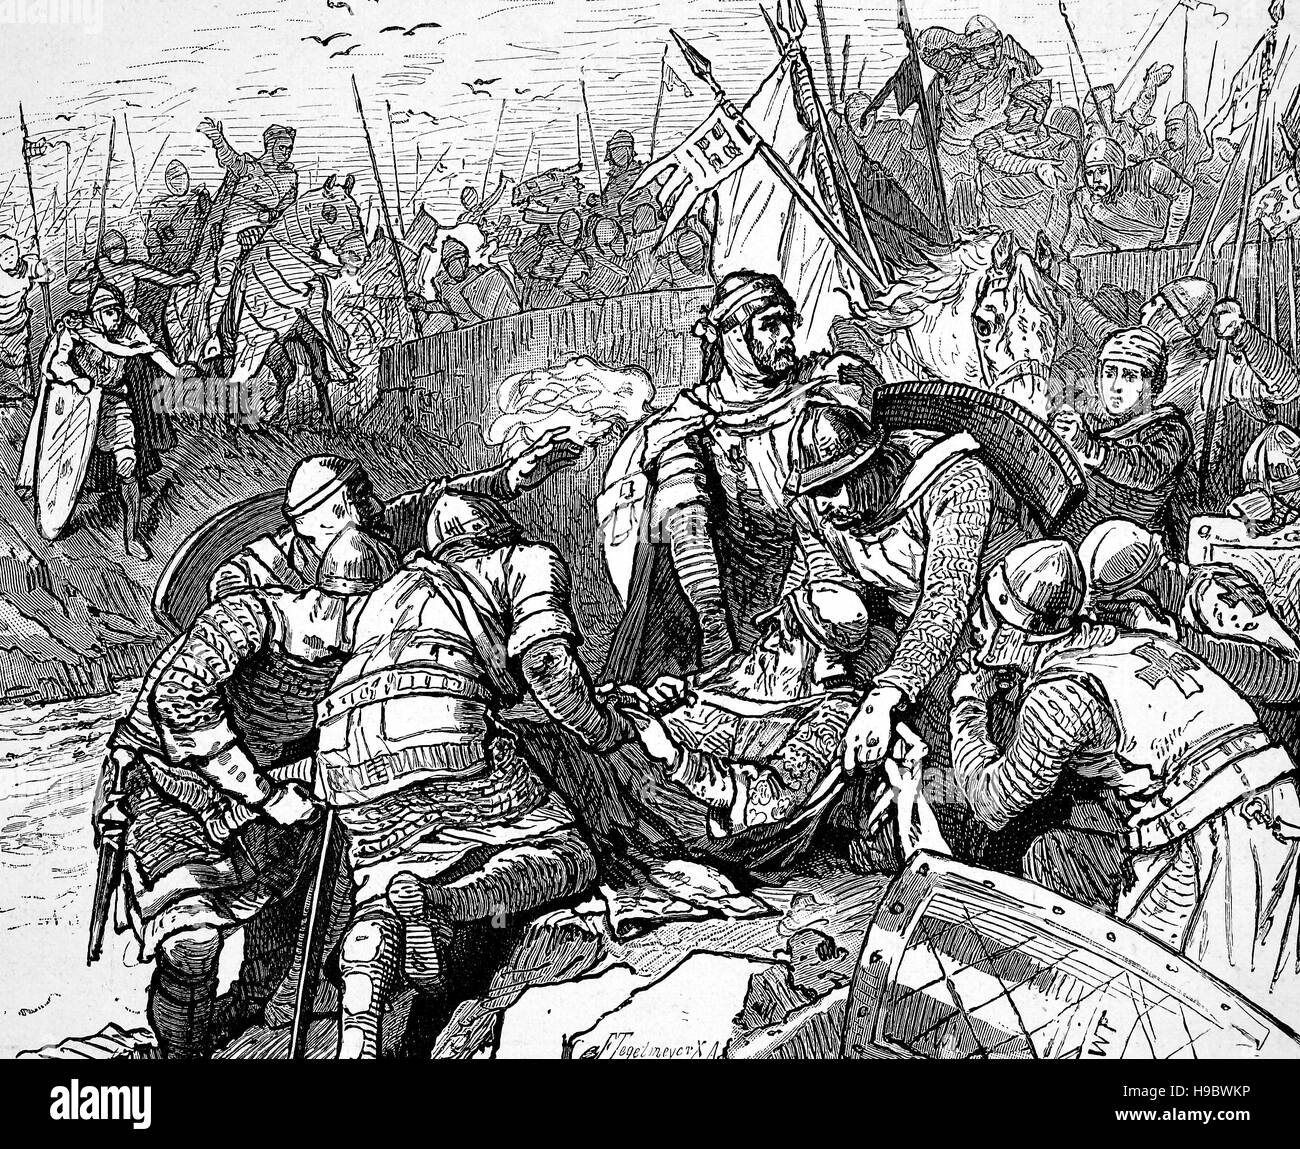 the dead of Frederick I, Friedrich, 1122 - 10 June 1190, also known as Frederick Barbarossa, he was the Holy Roman - Stock Image